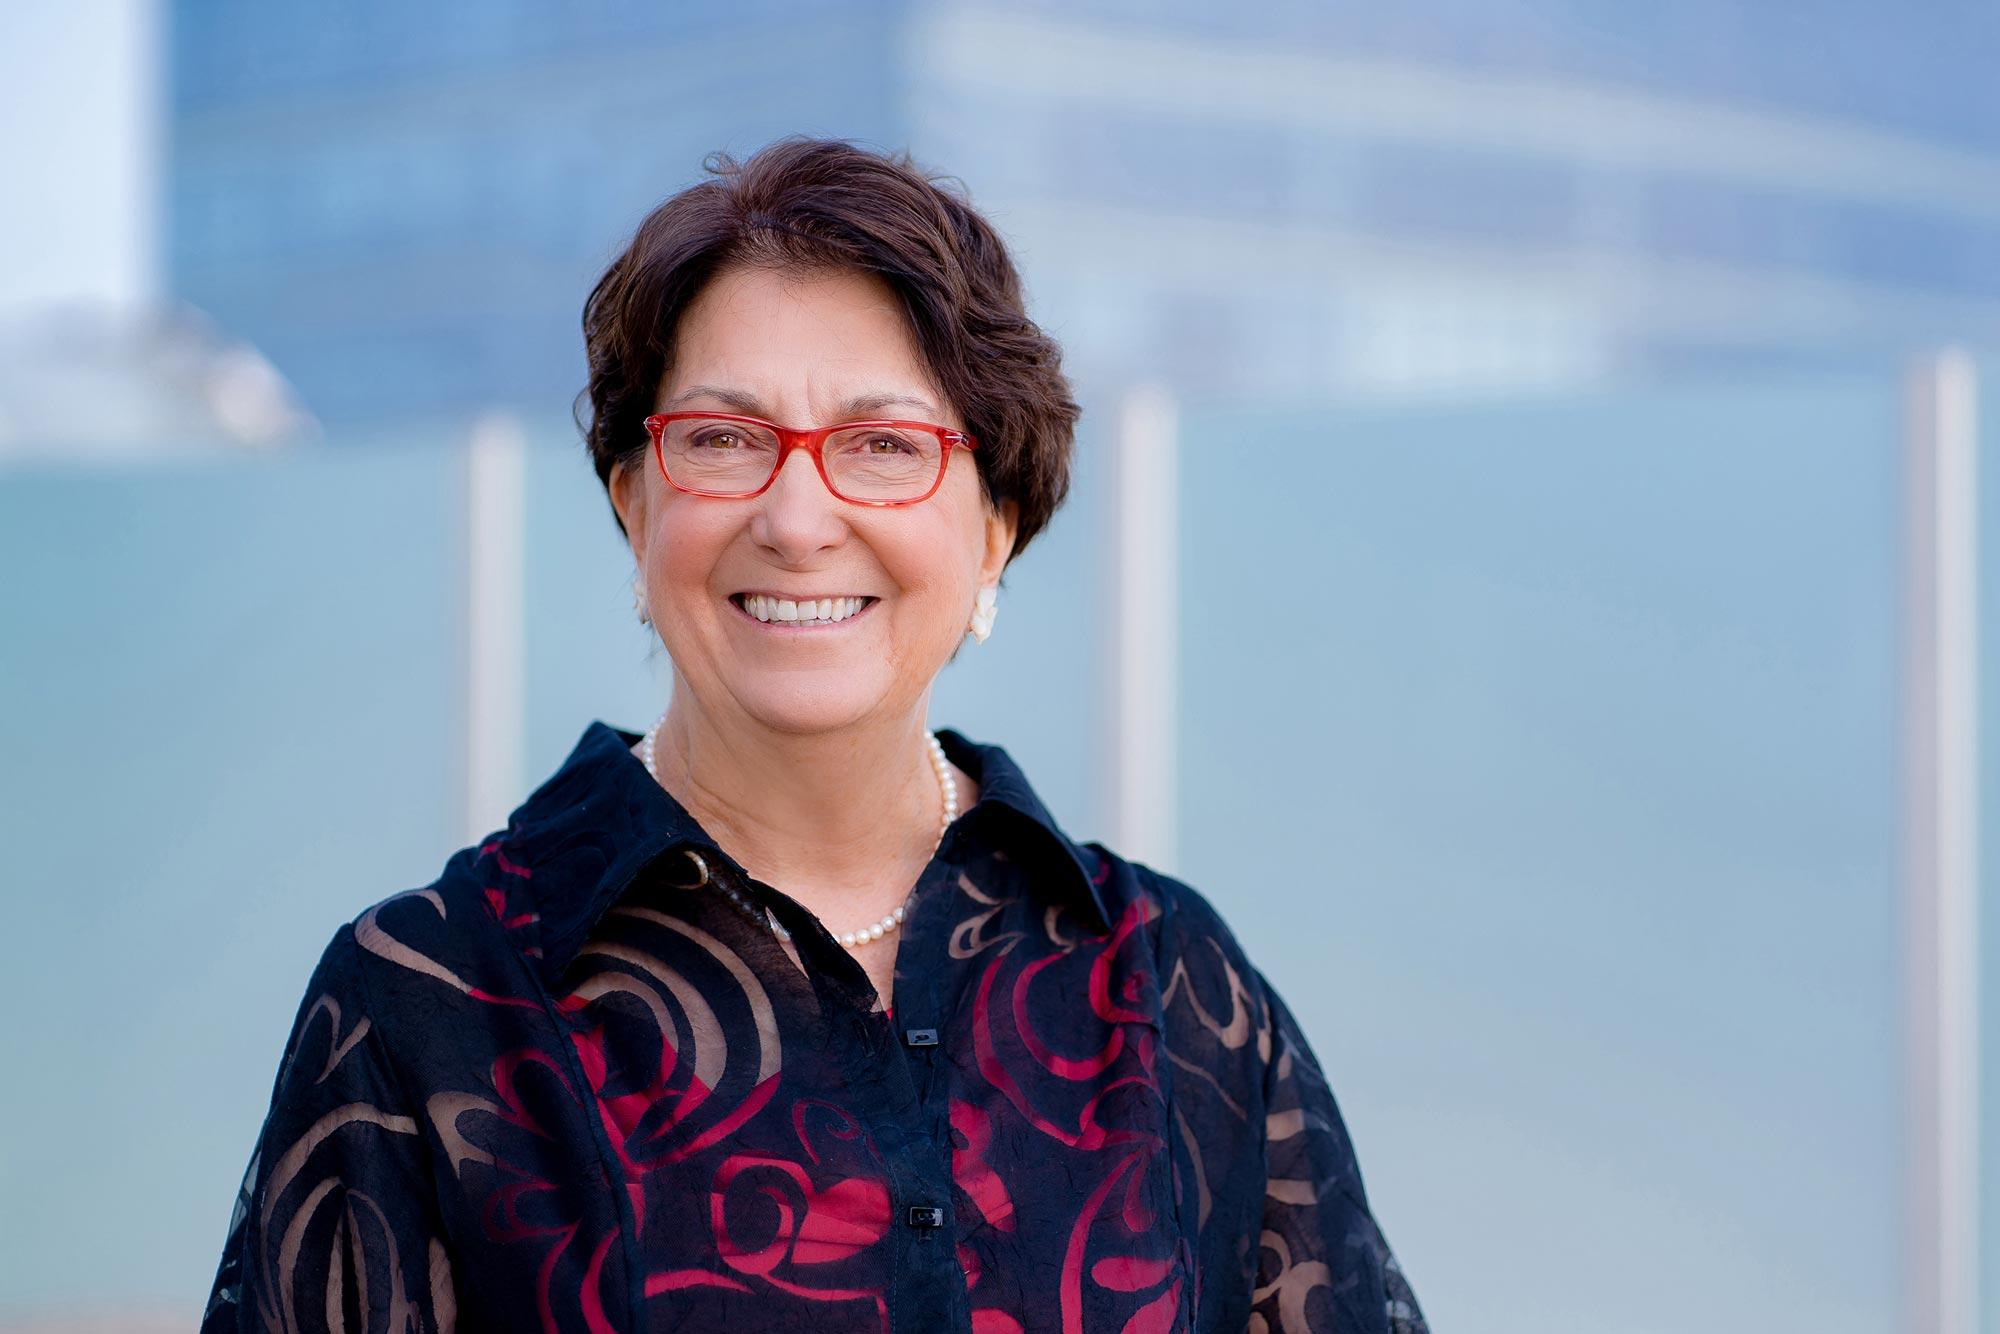 Sallie Ann Keller, director of the Social and Decision Analytics Division at UVA's Biocomplexity Institute